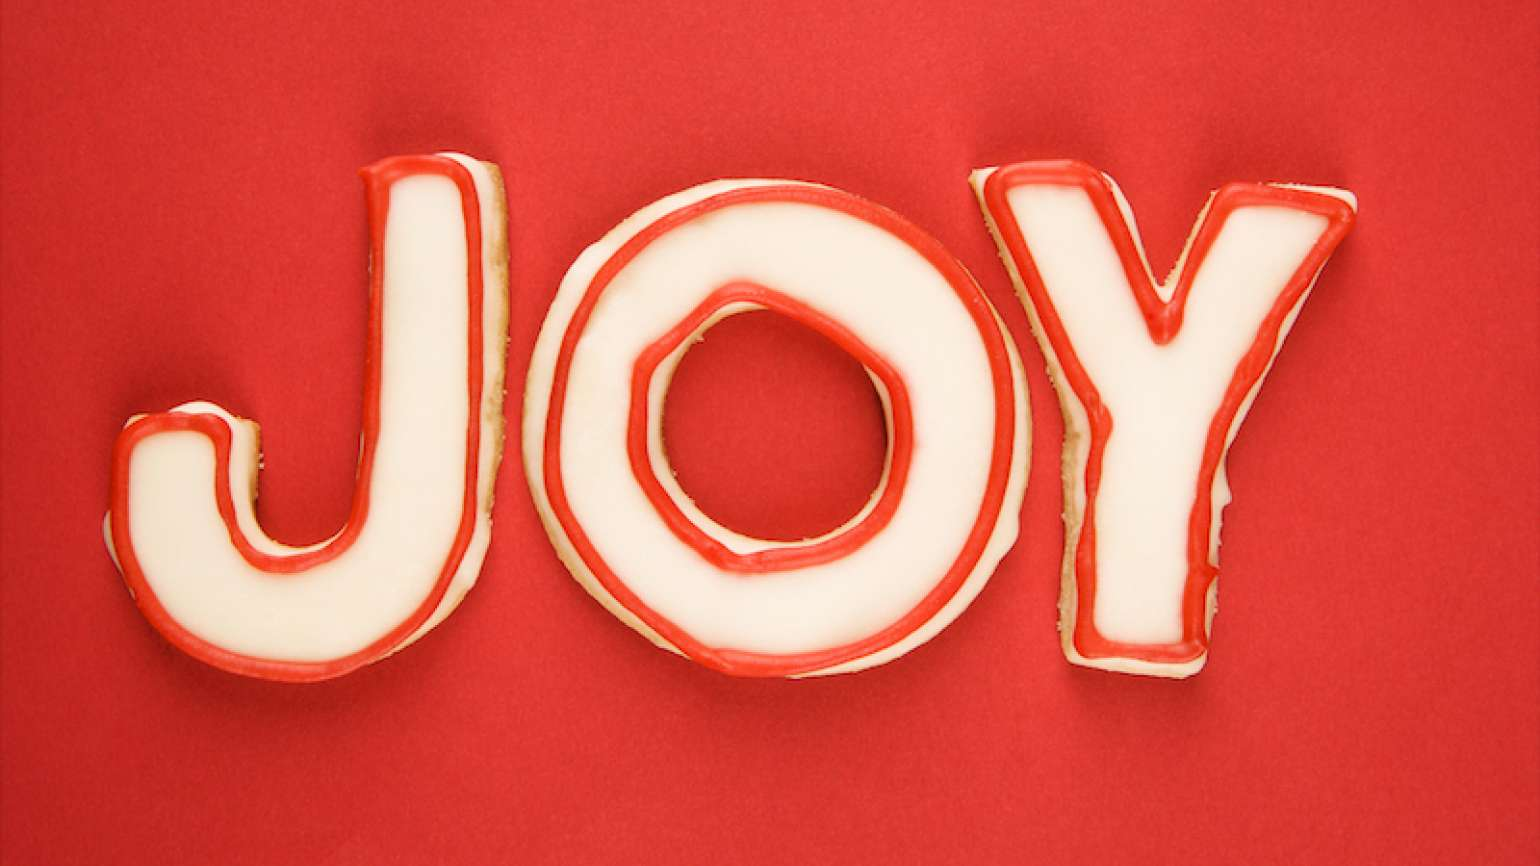 Joy spelled out! Photo by Ron+Chapple+Stock, Thinkstock.